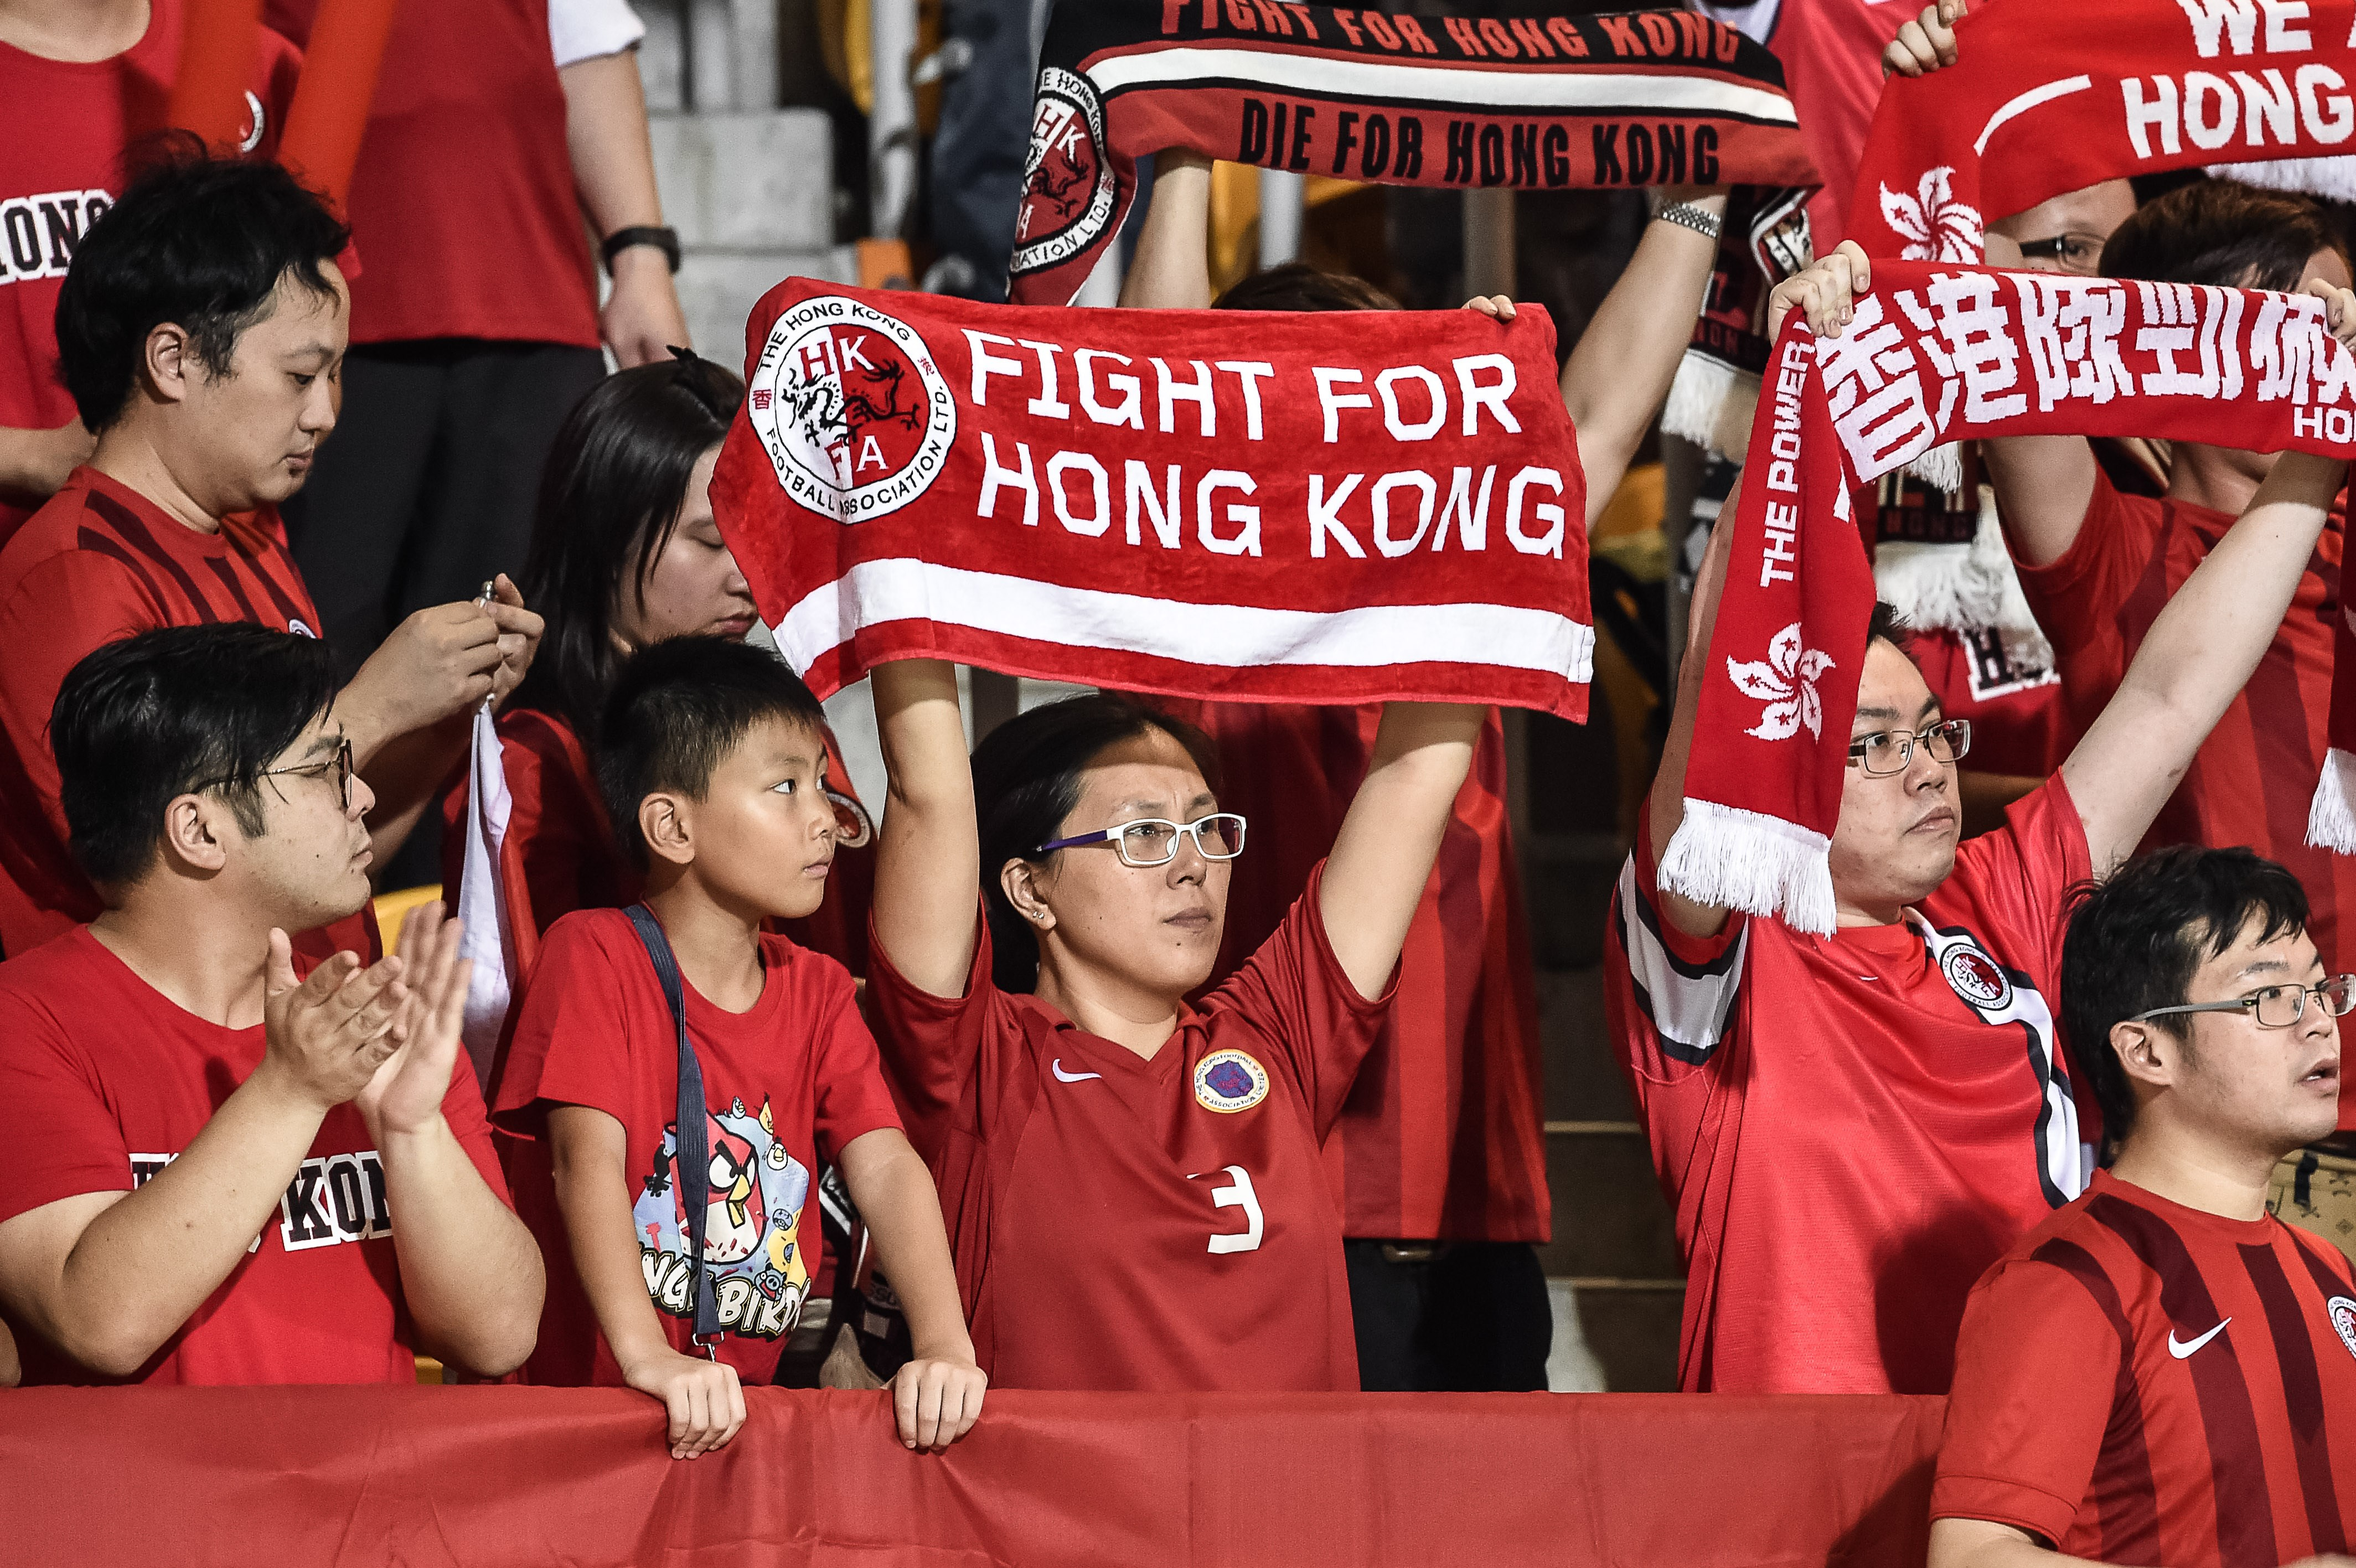 Hong Kong football fans during the 2018 World Cup football qualifying match between Hong Kong and Qatar in Hong Kong on Sept. 8, 2015. The Hong Kong Football Association said they would be  disappointed  if FIFA punished them after fans jeered the Chinese national anthem before they game